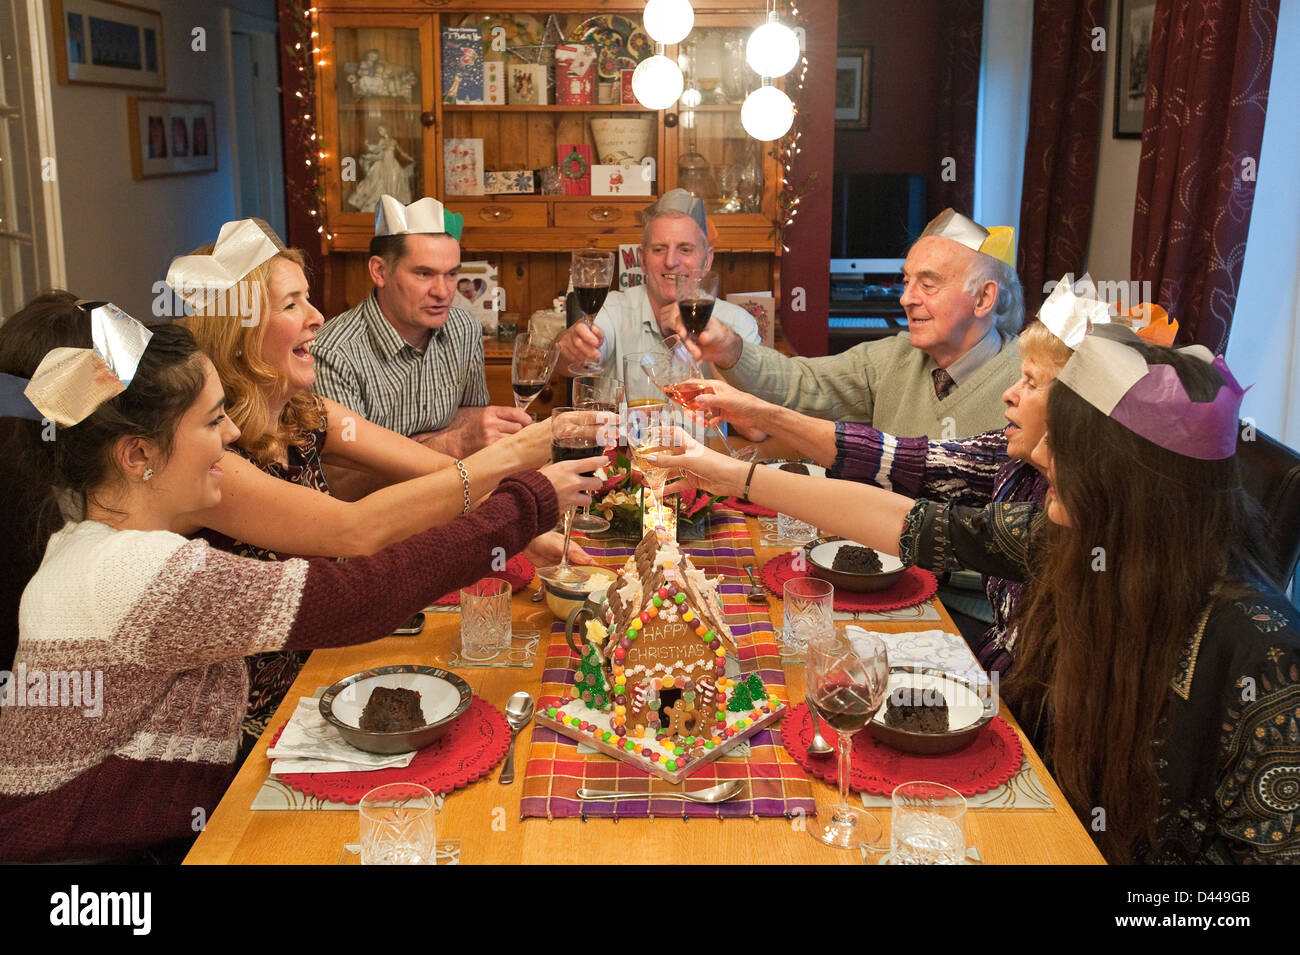 Horizontal portrait of three generations of a family enjoying Christmas lunch together round the table. - Stock Image